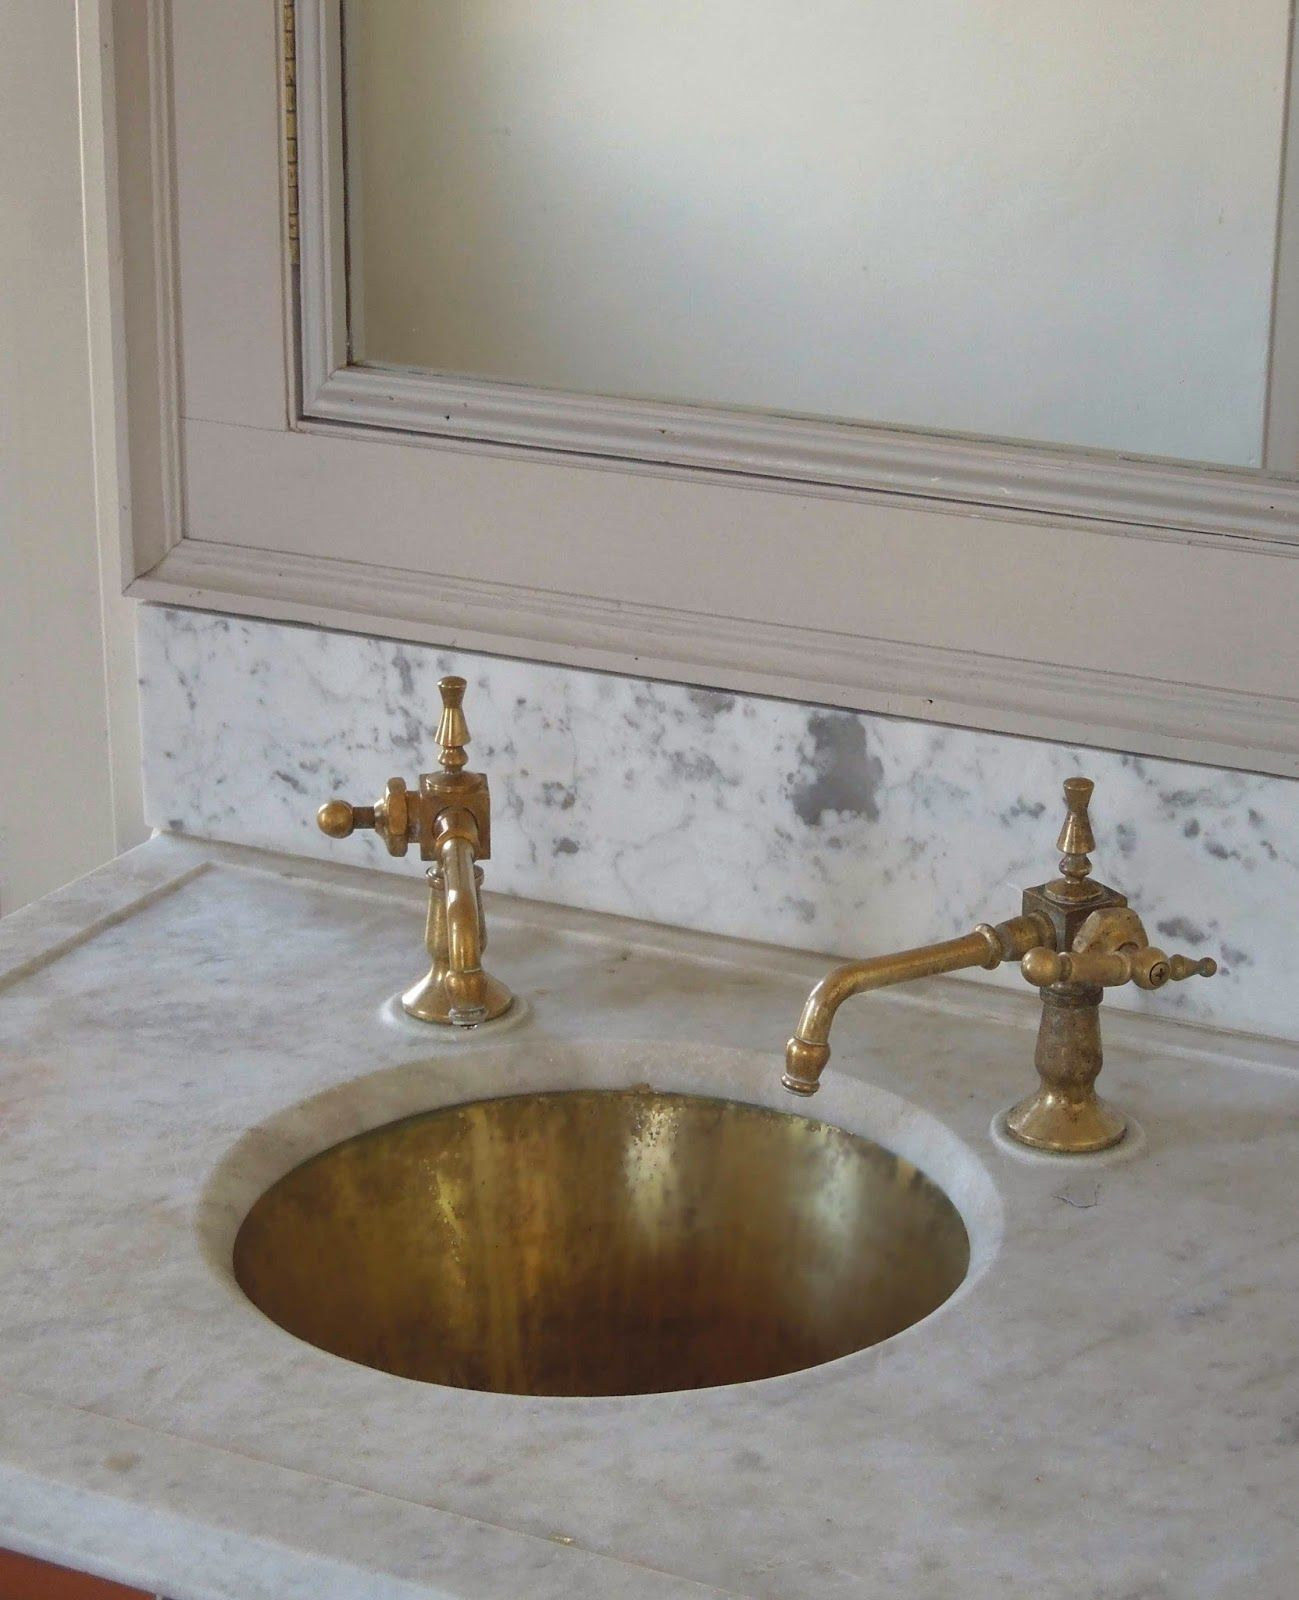 Unlacquered Brass Faucet  Butlers Pantry Sink  White